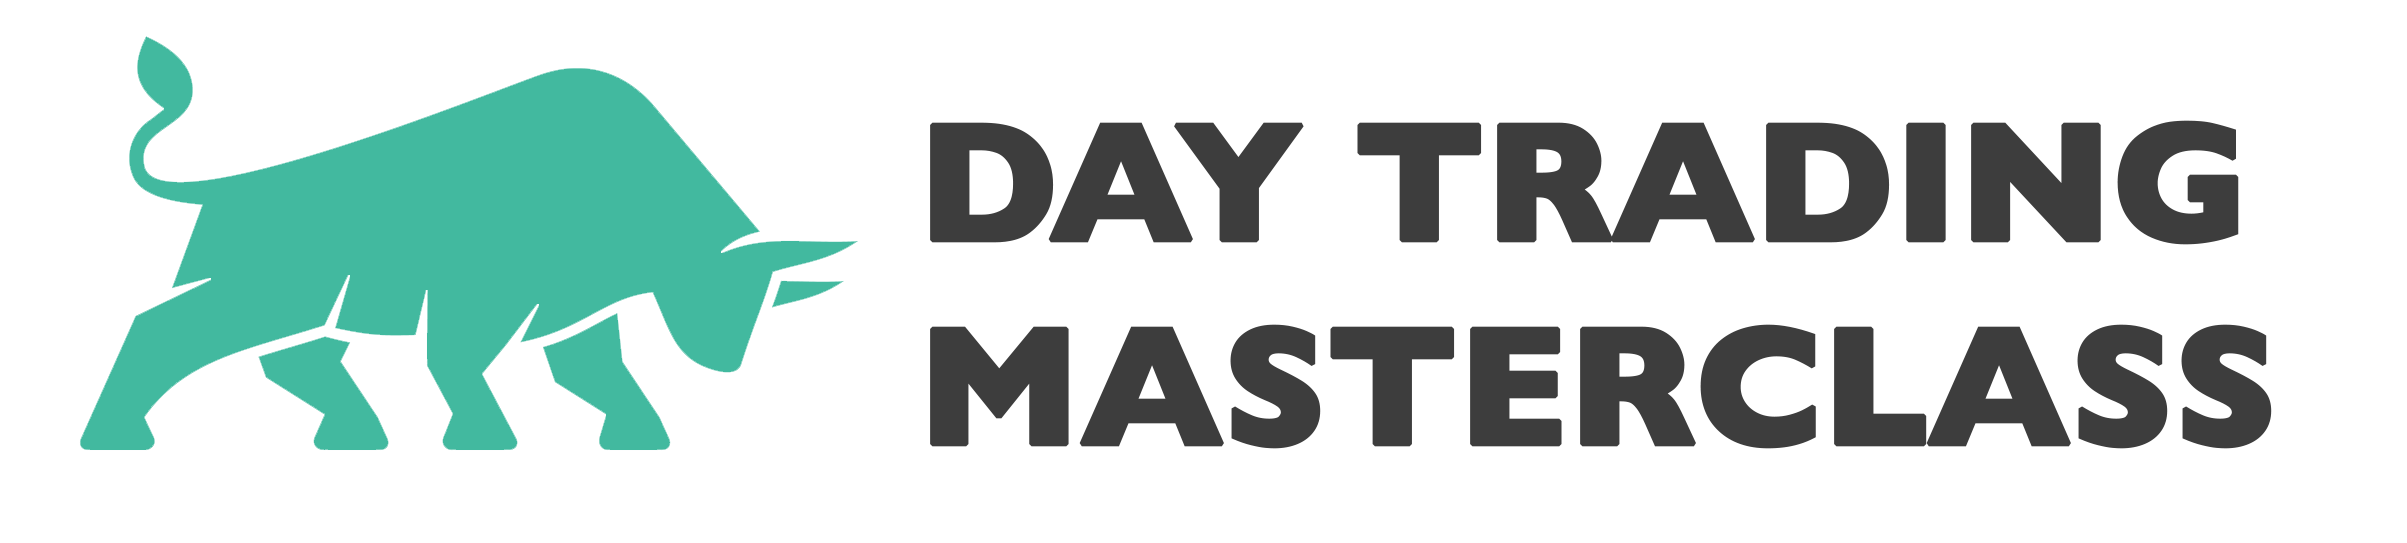 Day trading masterclass